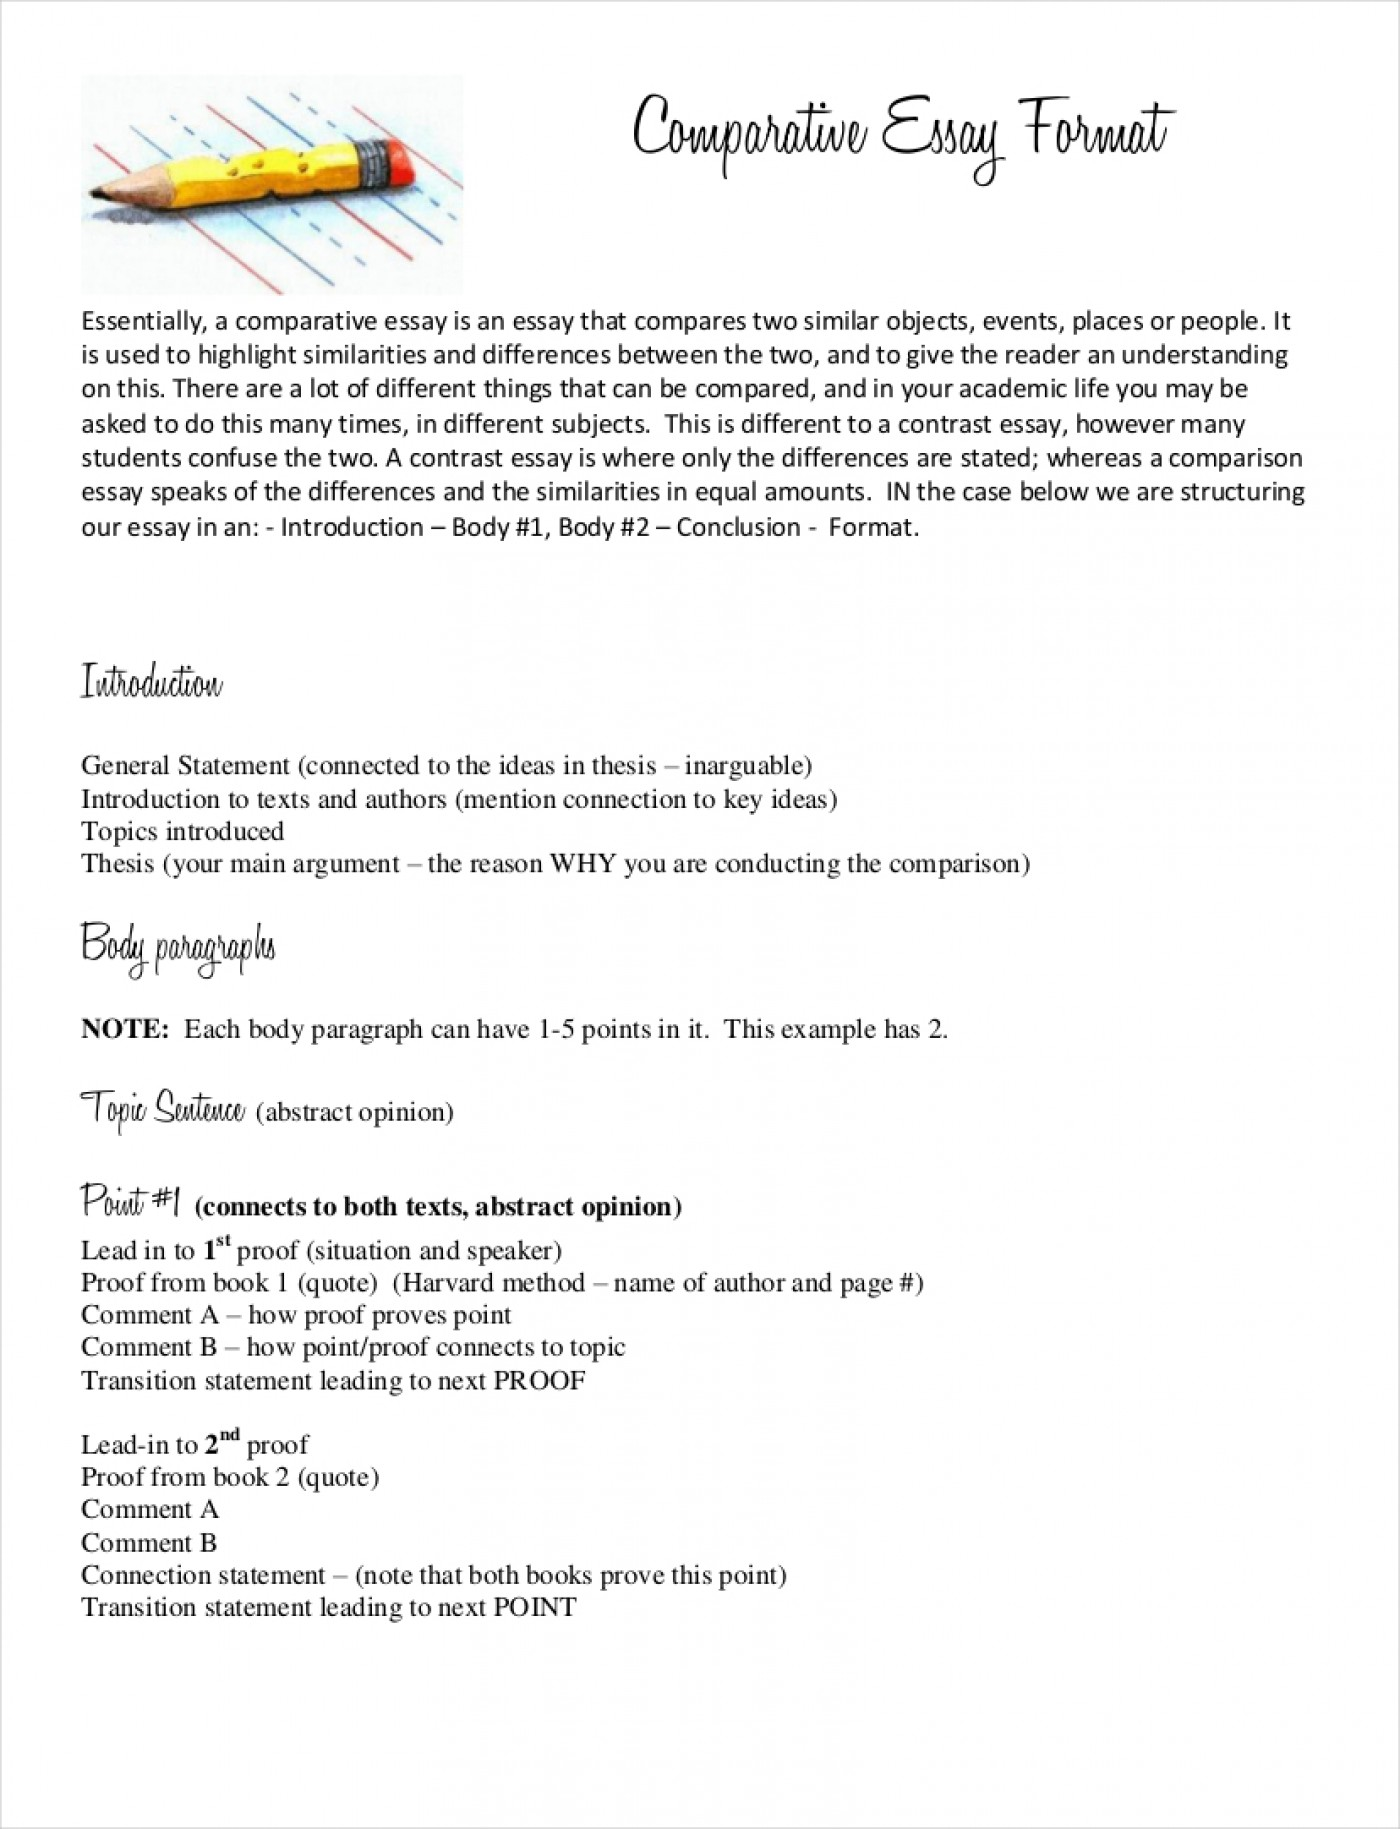 006 Comparative Essay Example Good Cover Letter Samples Sample Pdf Free Format Download W Unique Writing Rubric Structure 1400